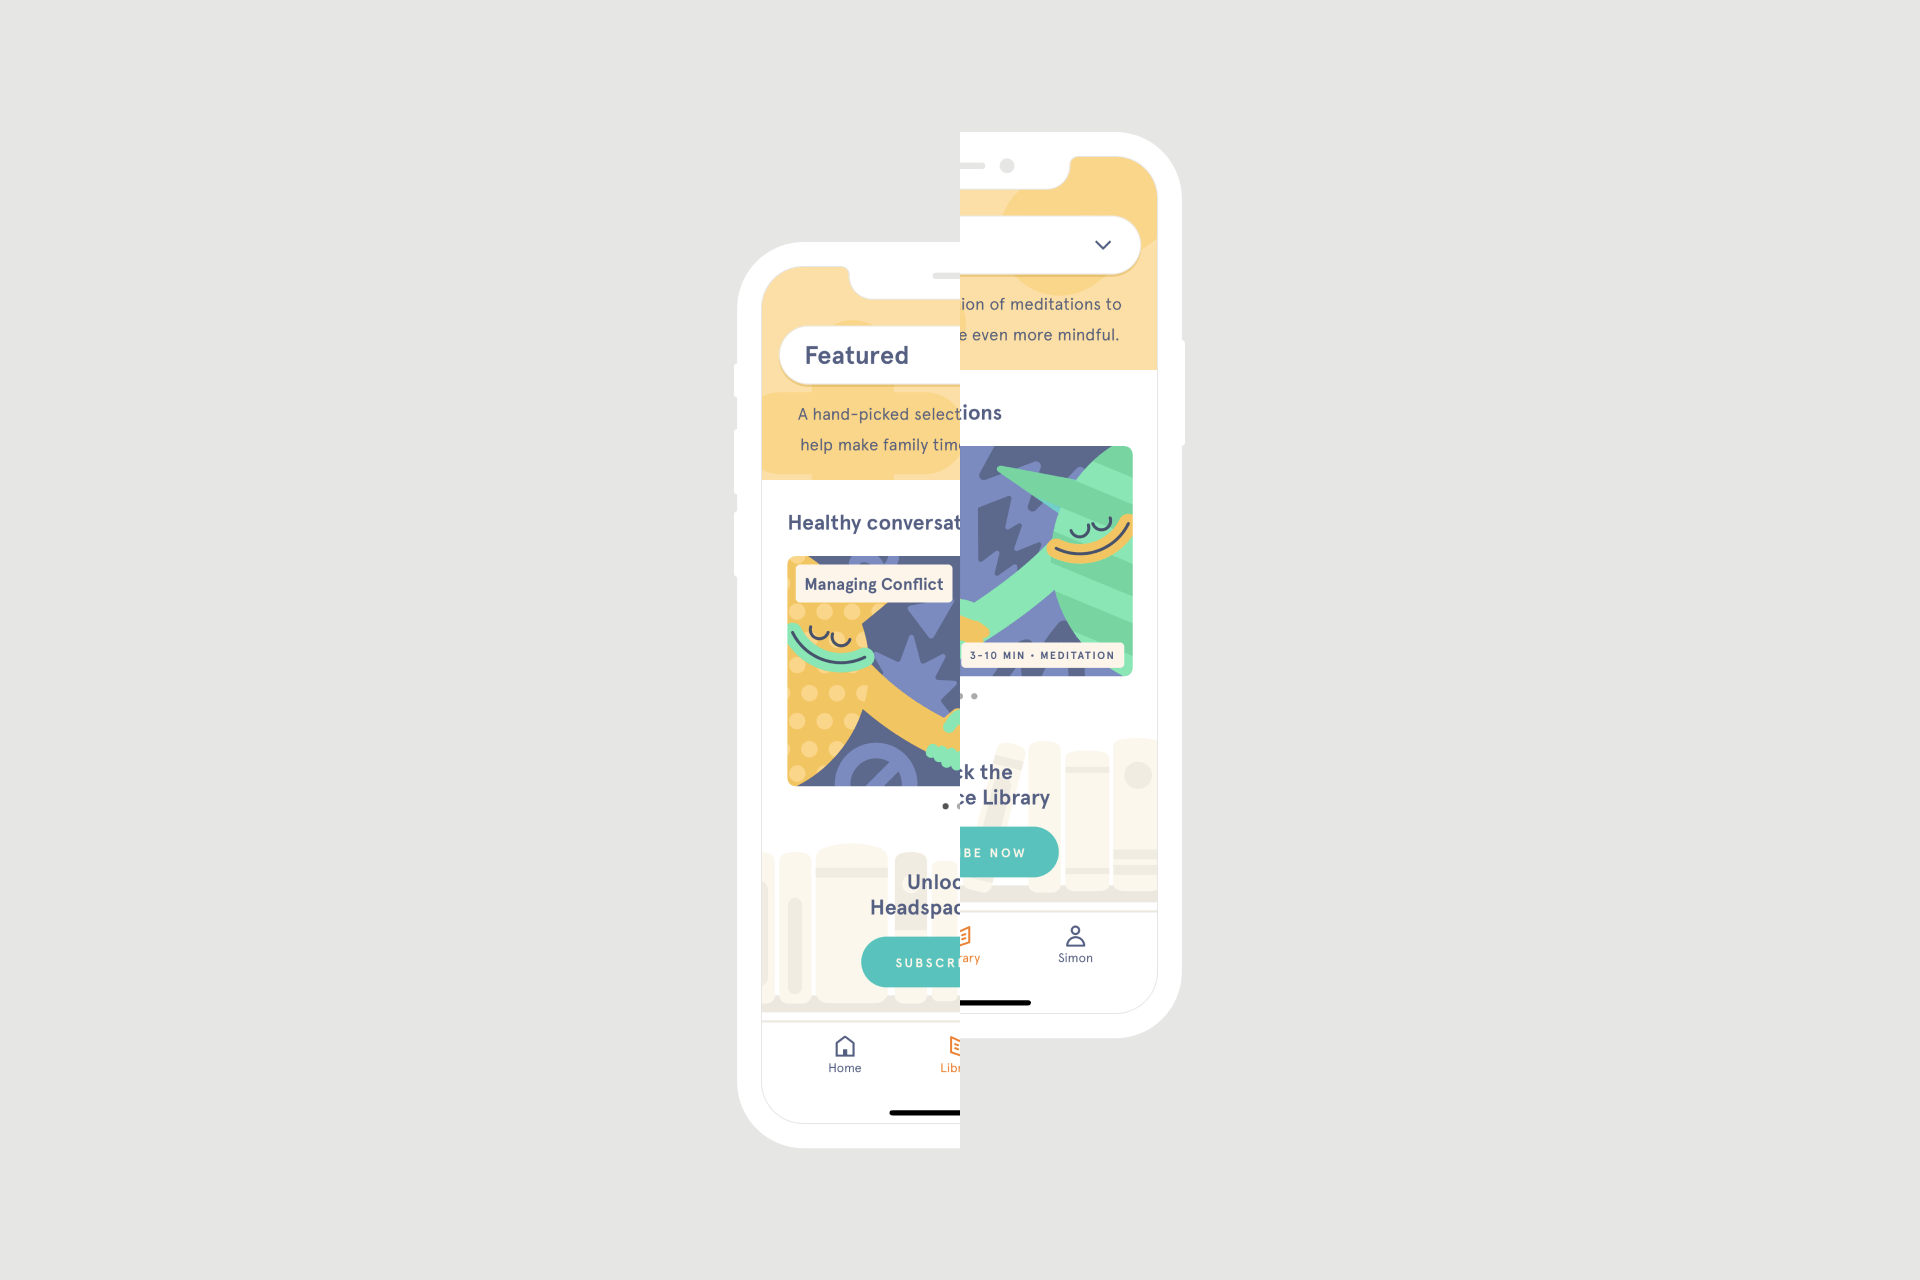 A designer's take on the Headspace app